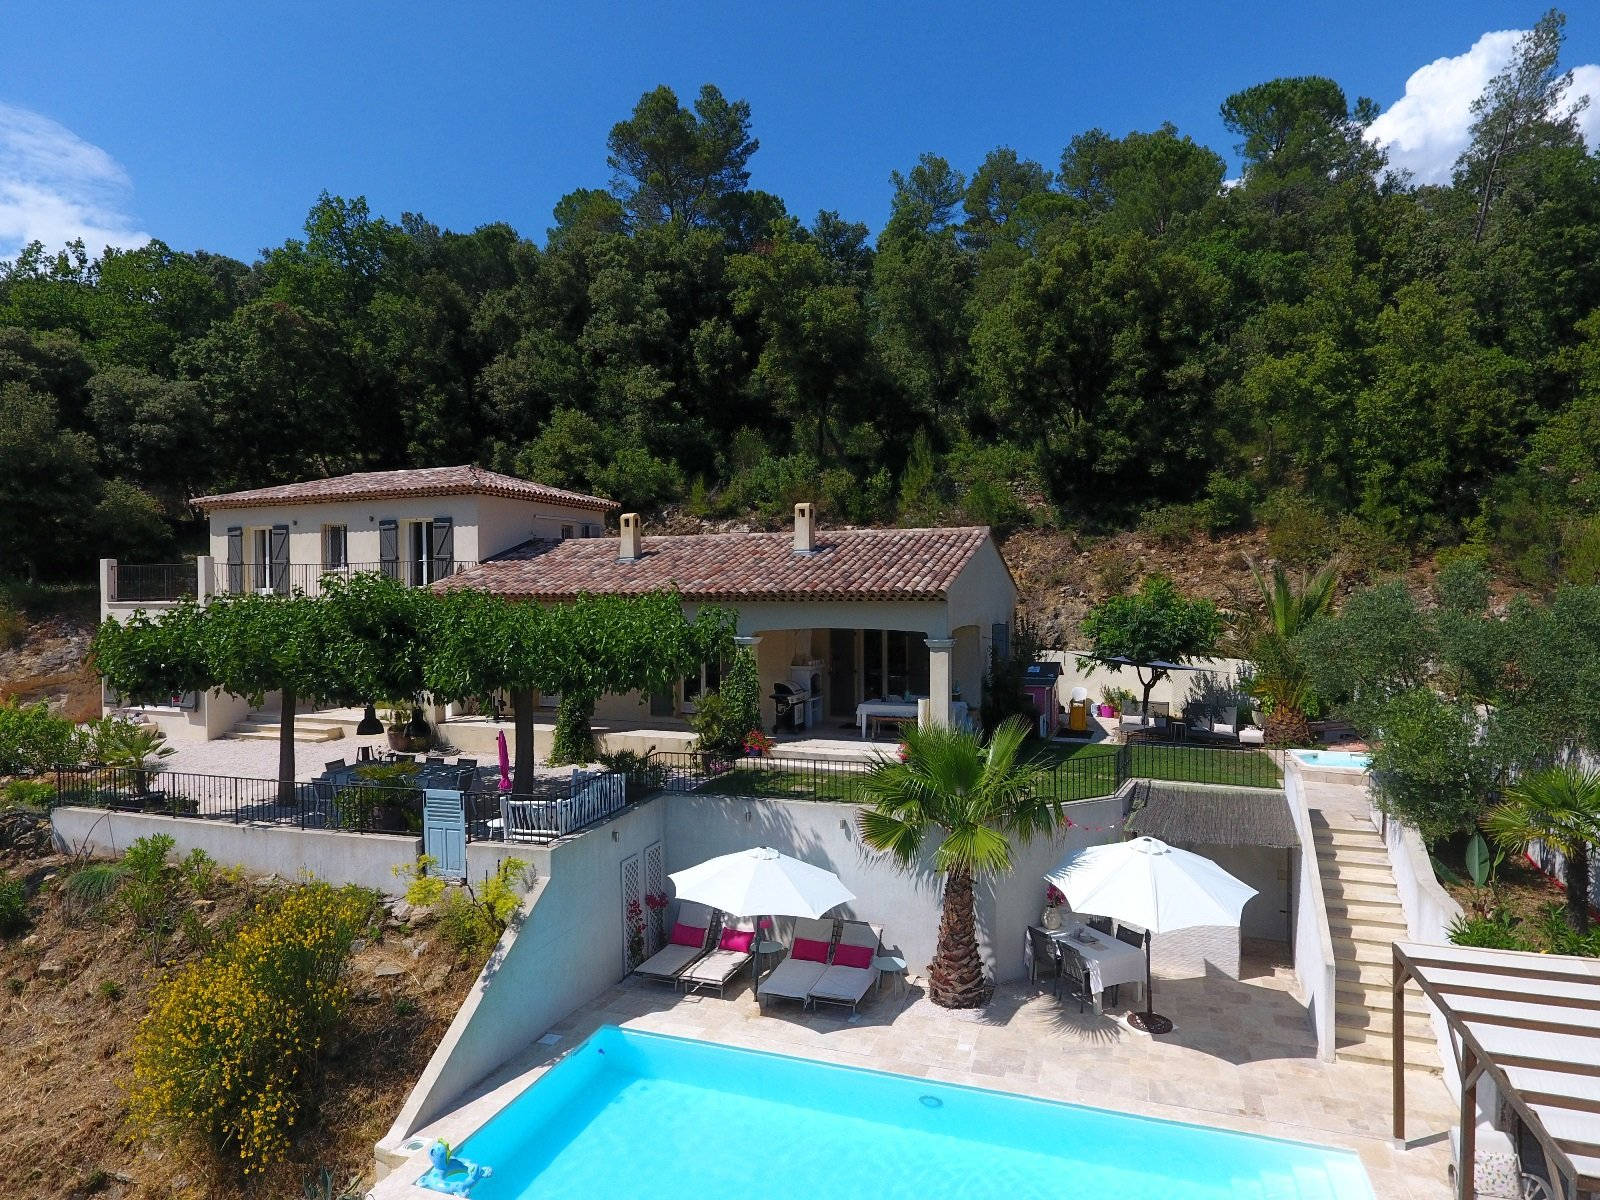 Large family house 5 bedrooms, 4 bathrooms and a heated pool and nice view